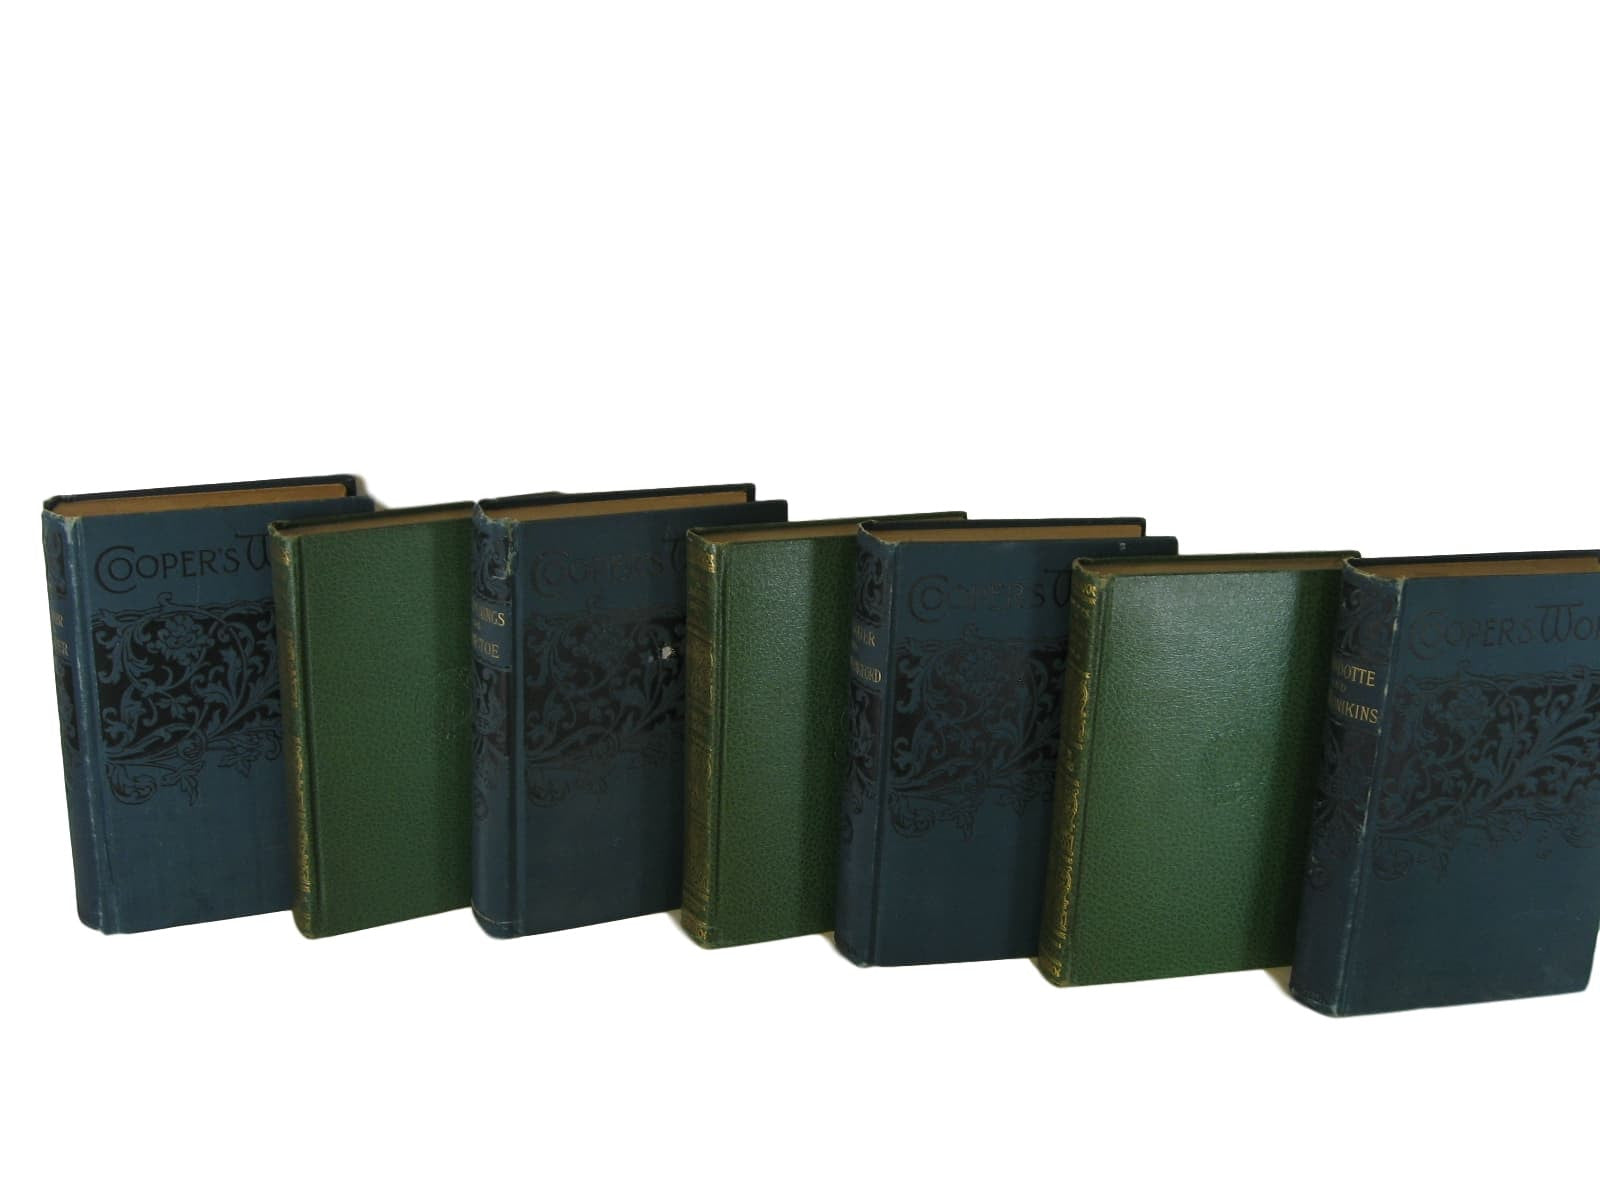 Blue and Green Bookshelf Decor, Vintage Antique Book Set, S/7 - Decades of Vintage